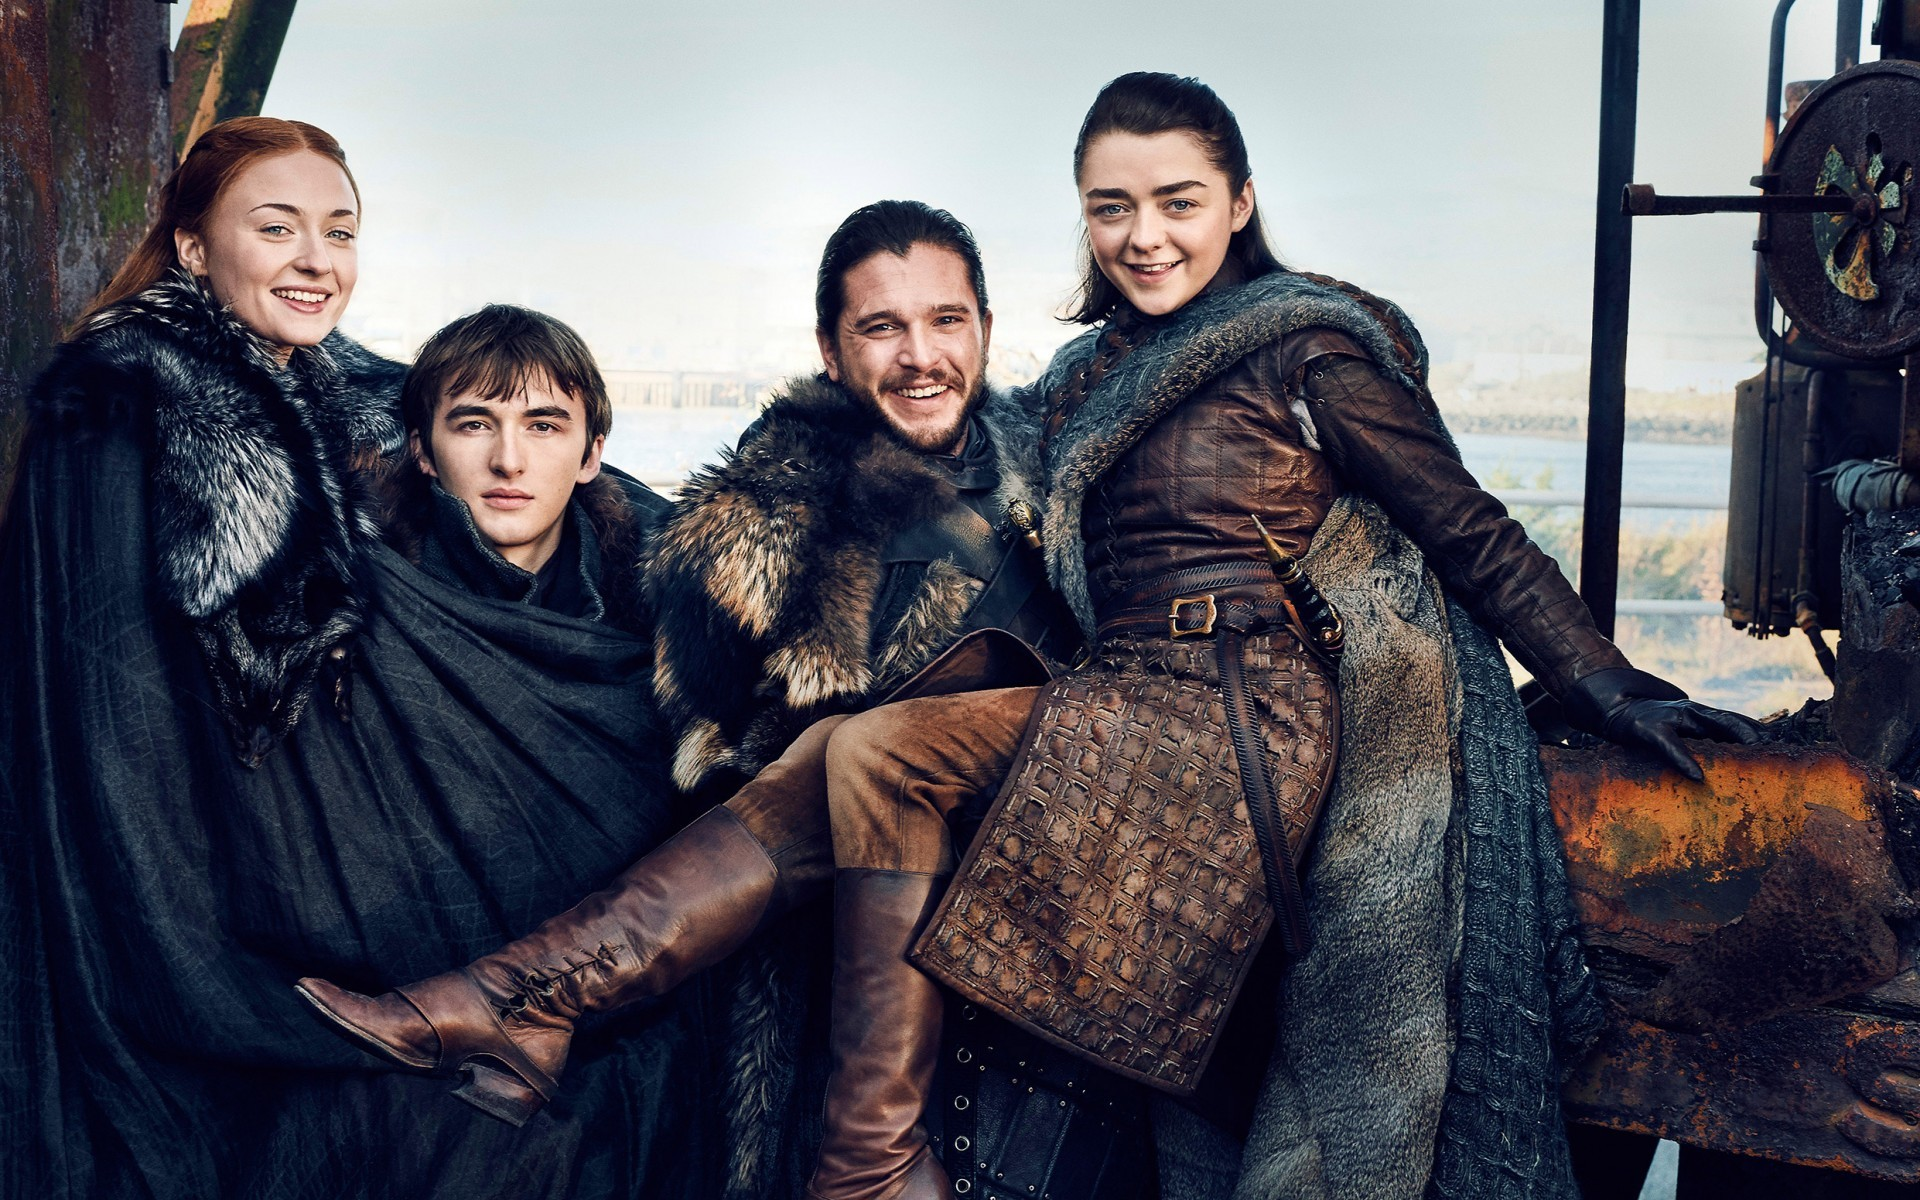 1920x1200 Sansa Stark, Bran Stark, Game of Thrones 2017, Jon Snow, Arya Stark, Isaac  Hempstead-Wright, Kit Harington, Maisie Williams, Sophie Turner